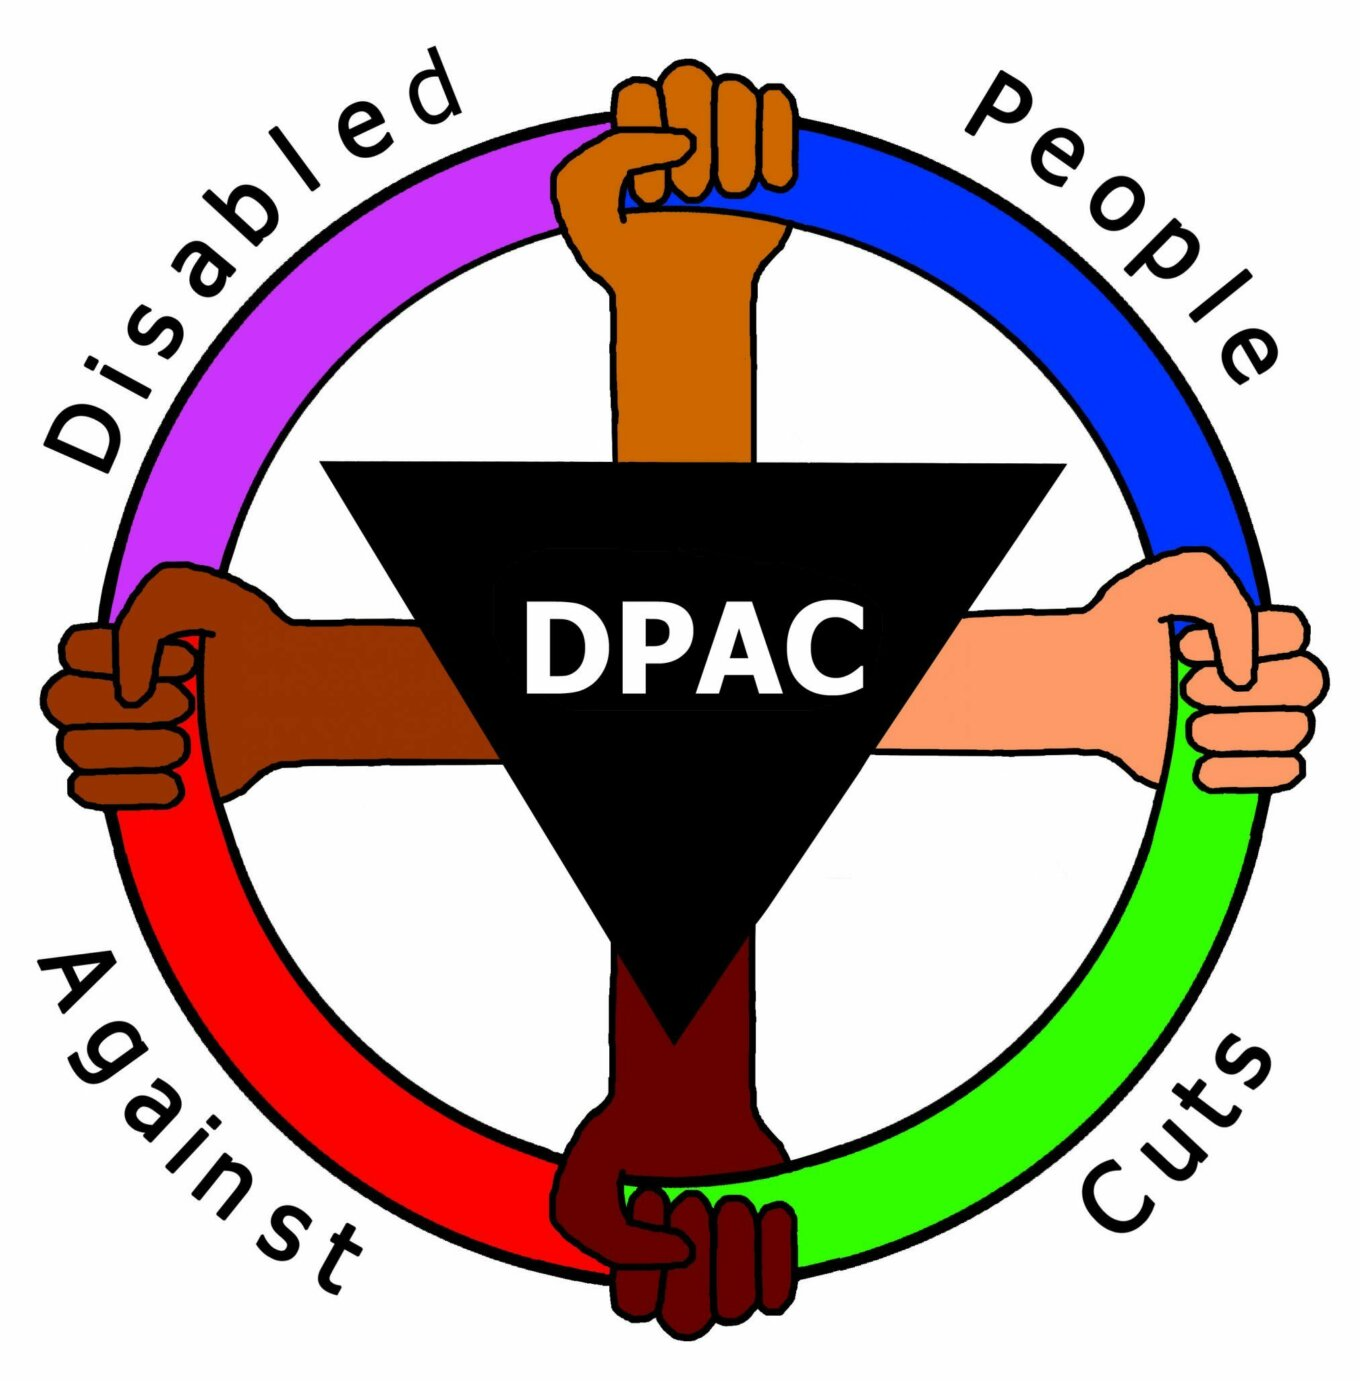 Disabled People Against Cuts DPAC logo